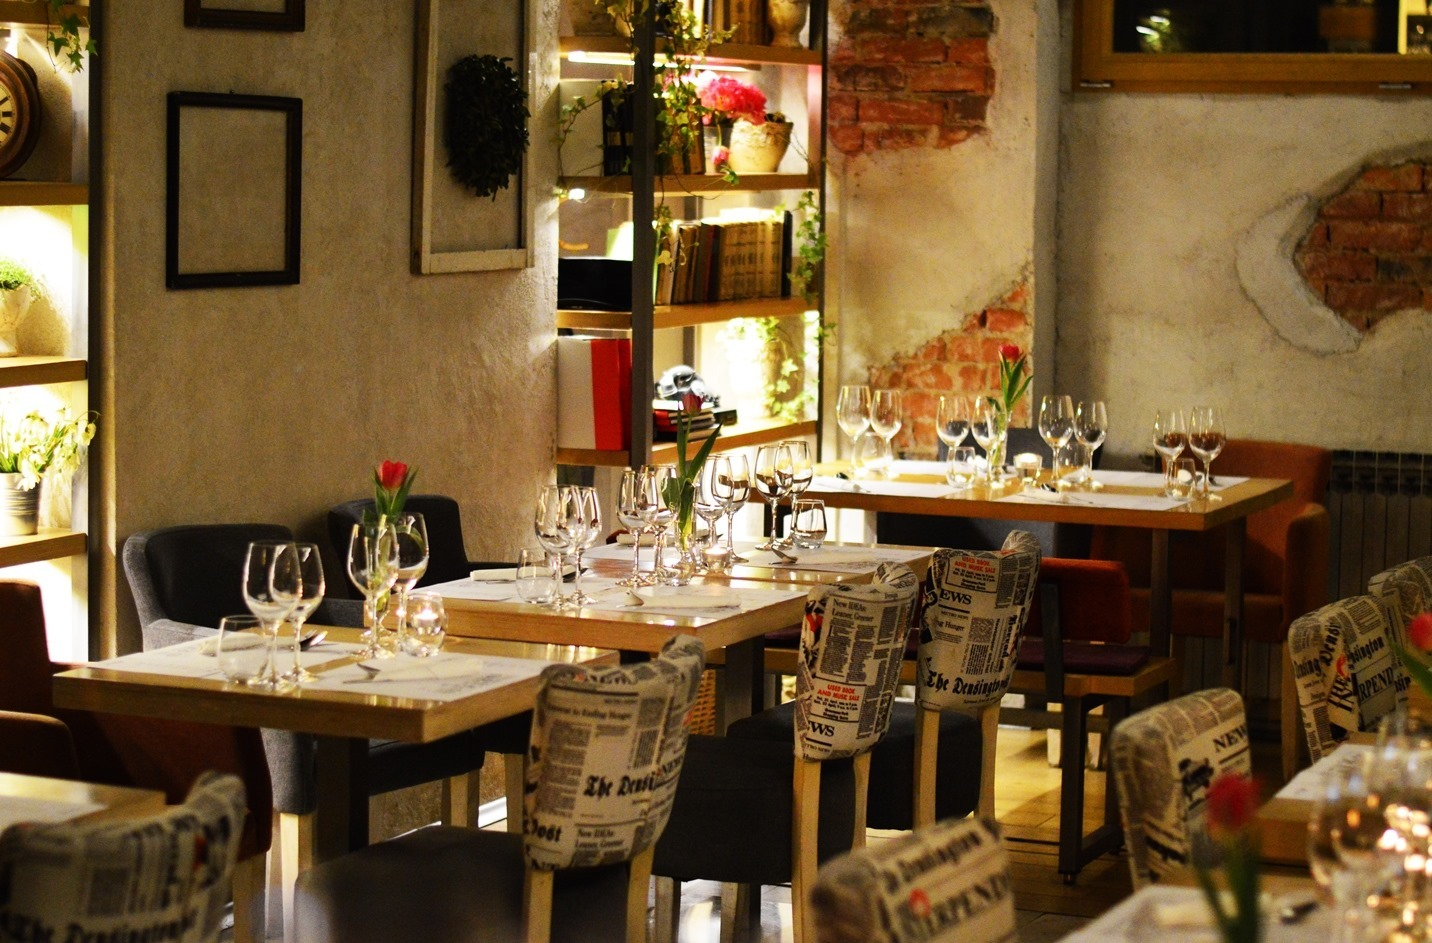 Zagreb's awesome restaurants: Where to nourish your body and soul